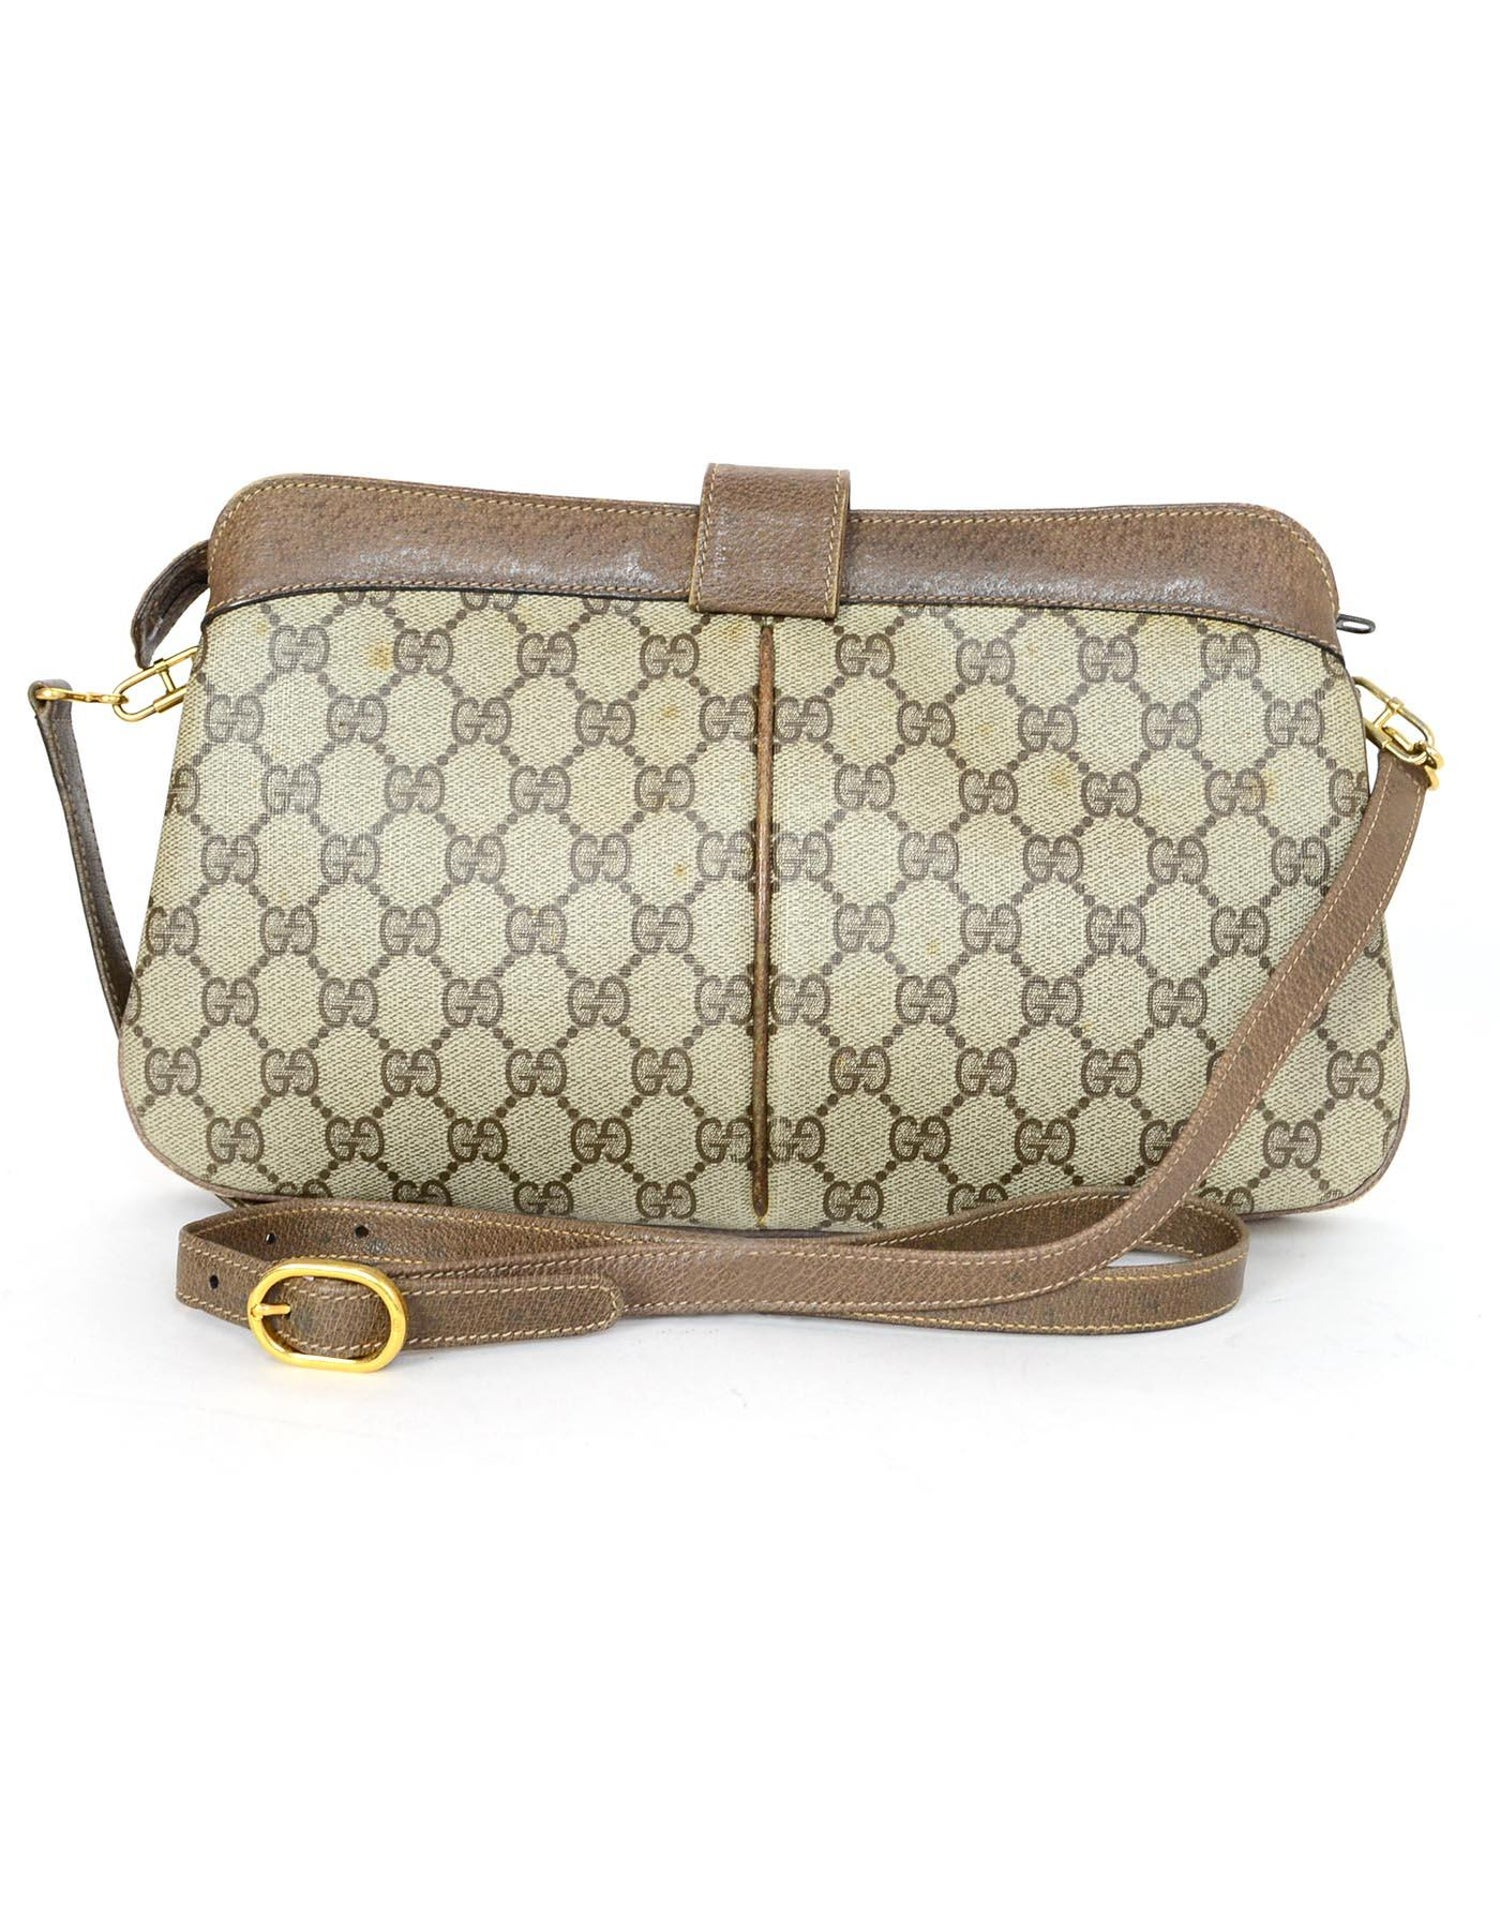 d7f9eb2825c6 Gucci Vintage Monogram Tan Coated Canvas/ Brown Leather GG Supreme Crossbody  Bag For Sale at 1stdibs